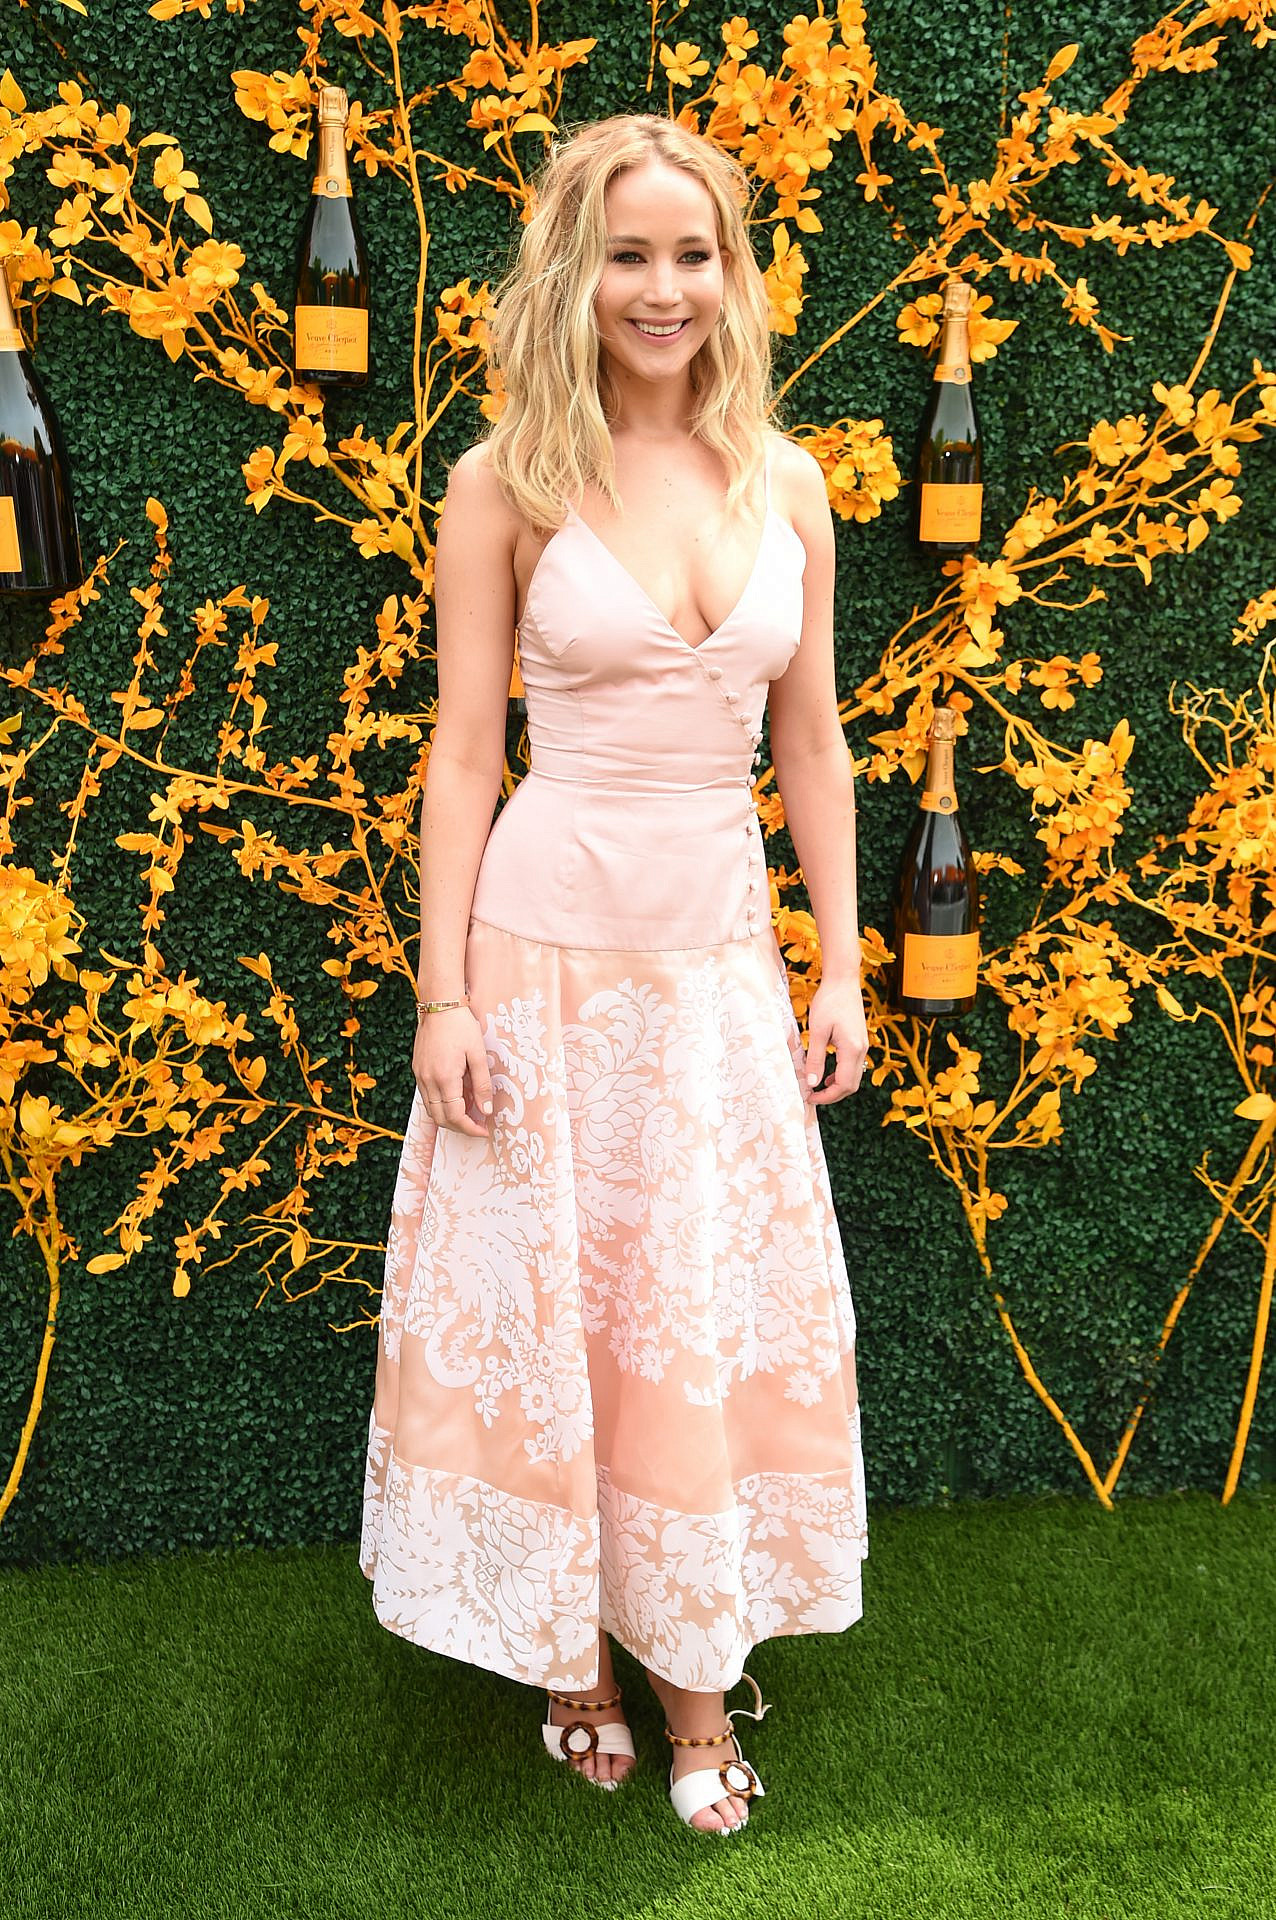 ג'ניפר לורנס | צילום: Jamie McCarthy/Getty Images for Veuve Clicquot